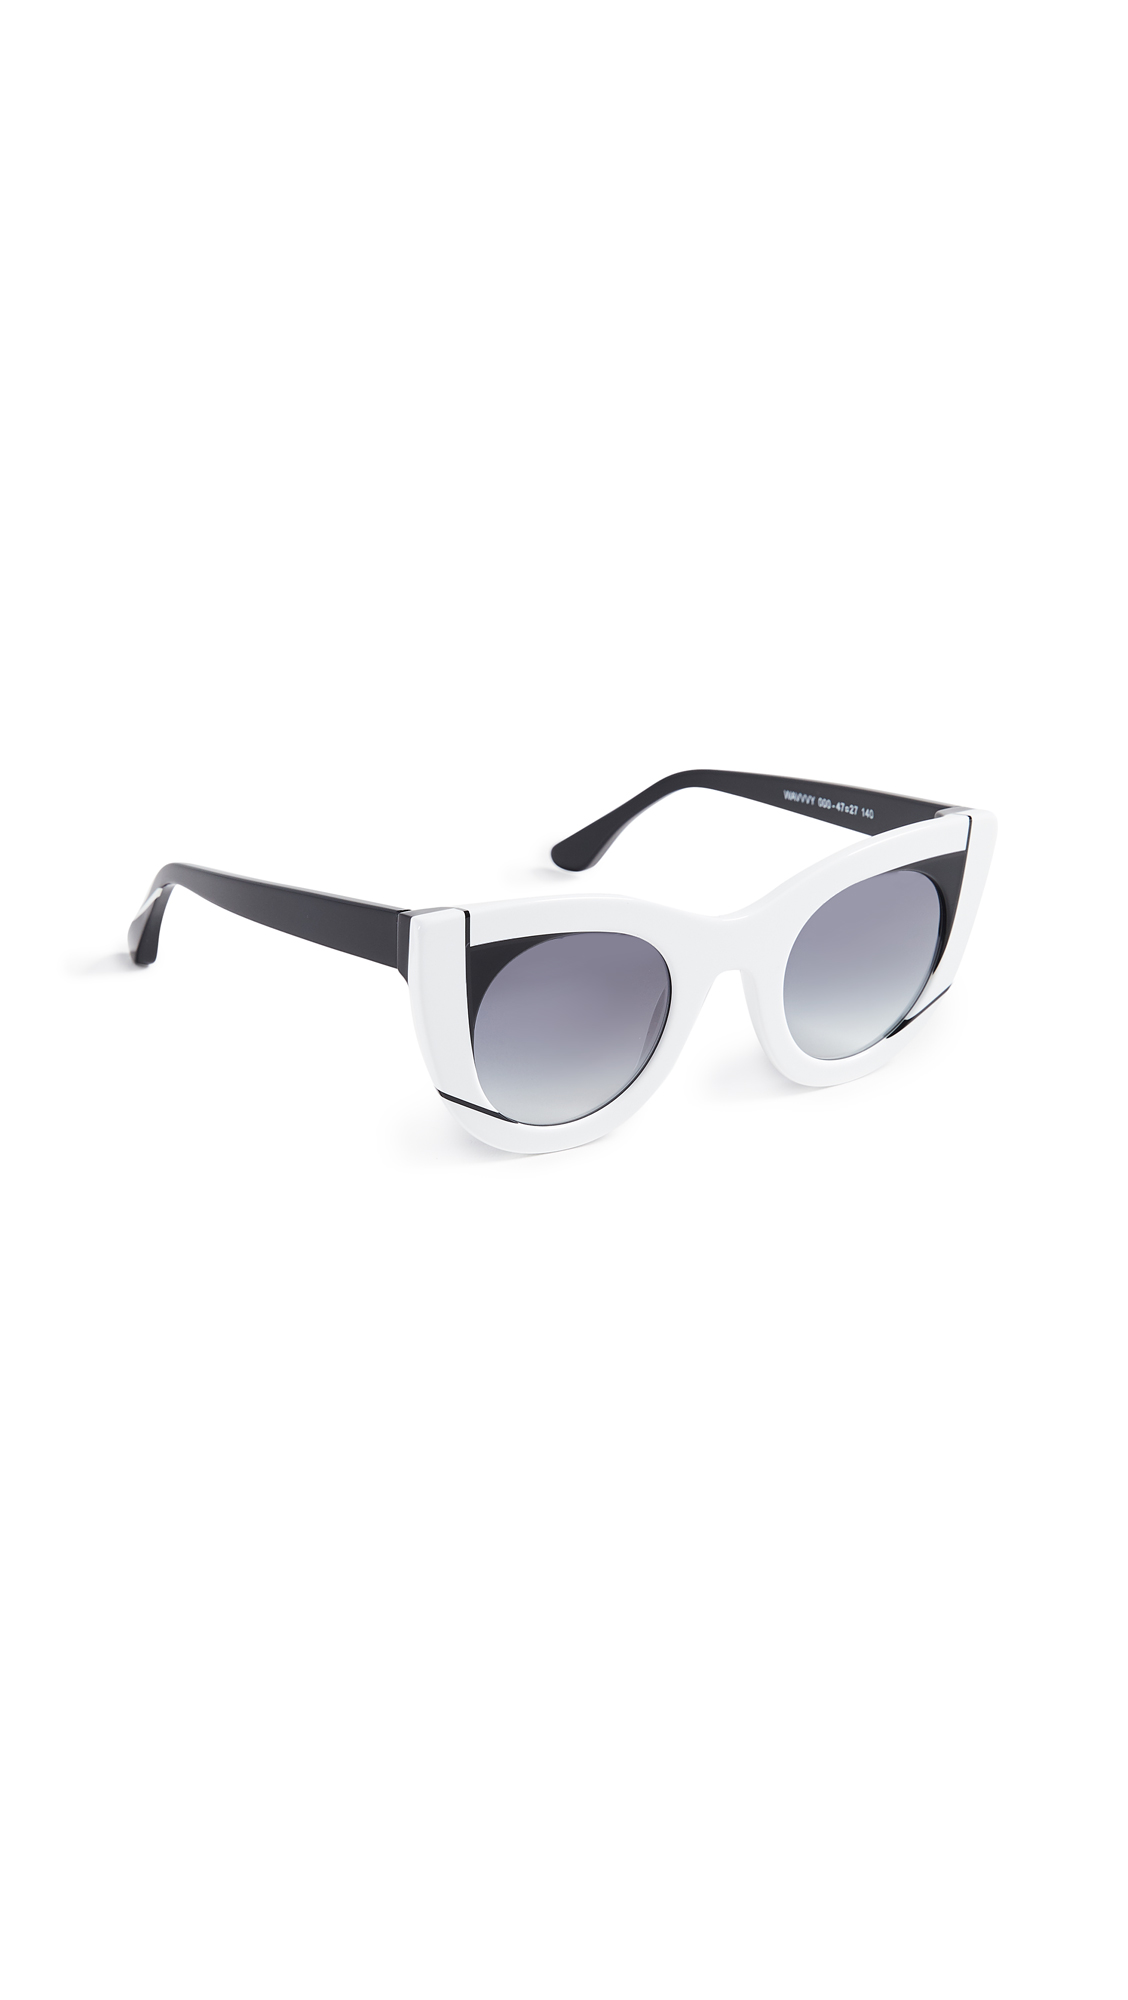 Thierry Lasry Wavy Sunglasses In White/Blue